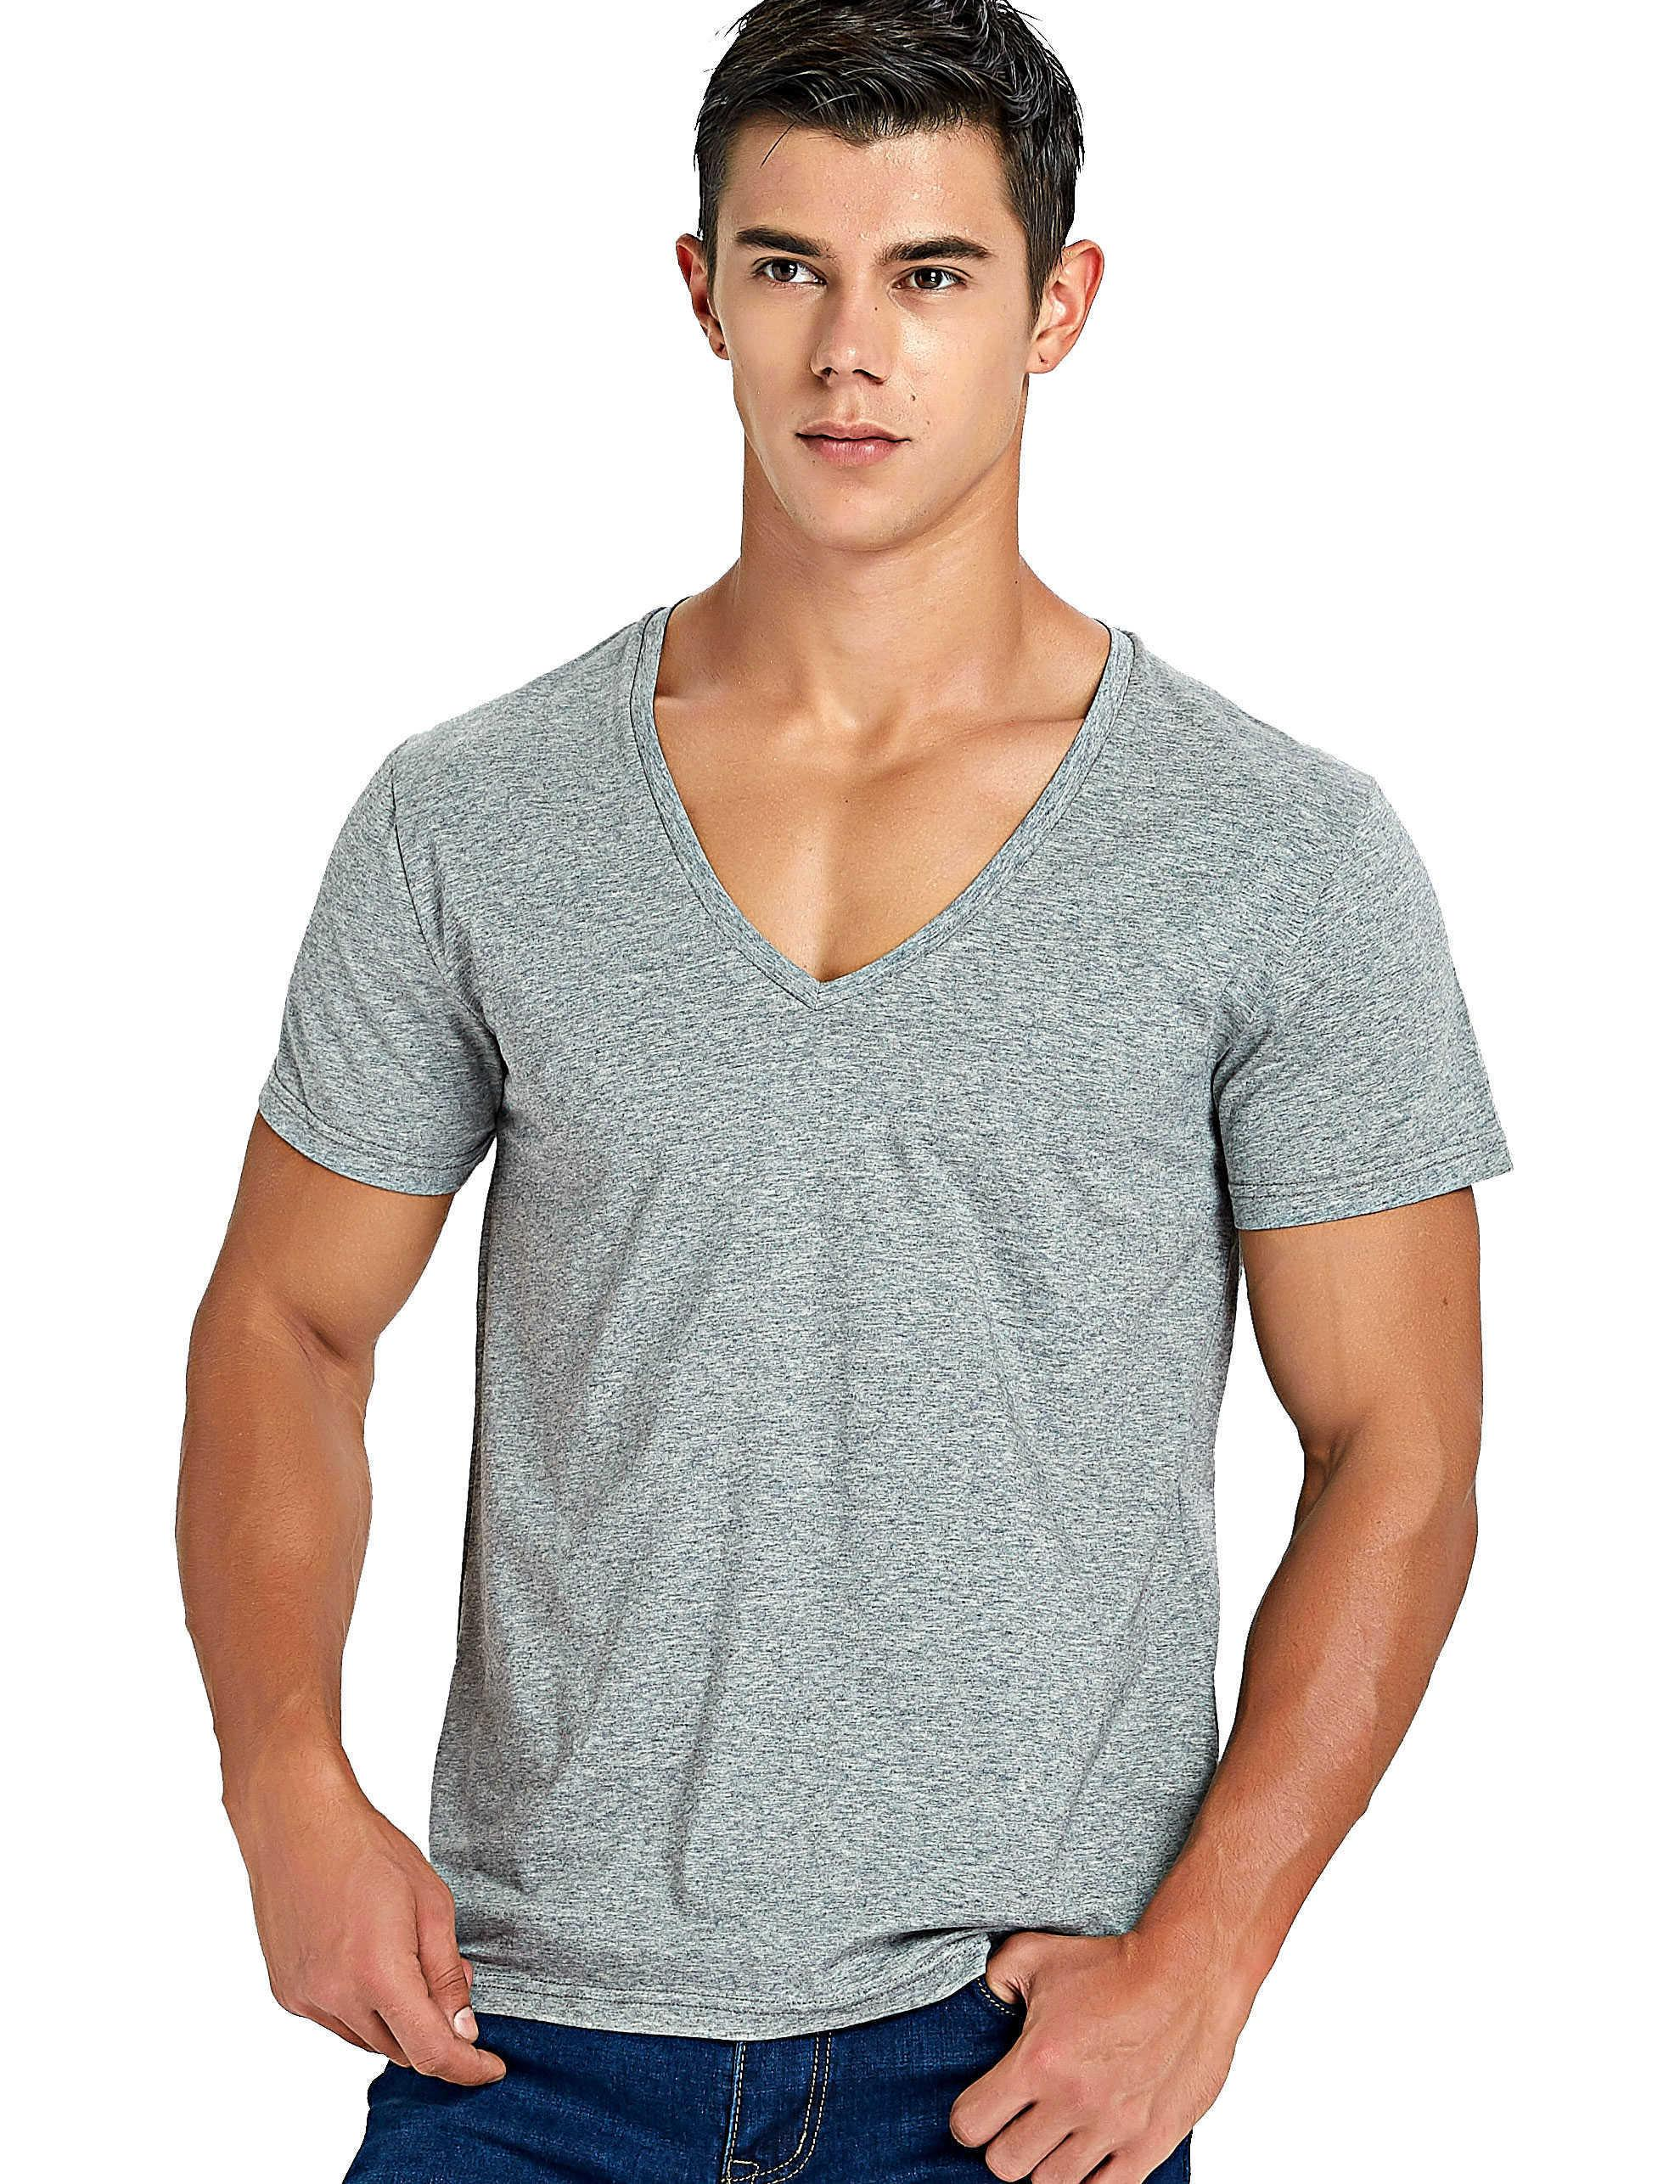 Stretch Deep V Neck T Shirt For Men Low Cut Vneck Vee Top Tees Slim Fit Short Sleeve Fashion Male Tshirt Invisible Undershirt C190420